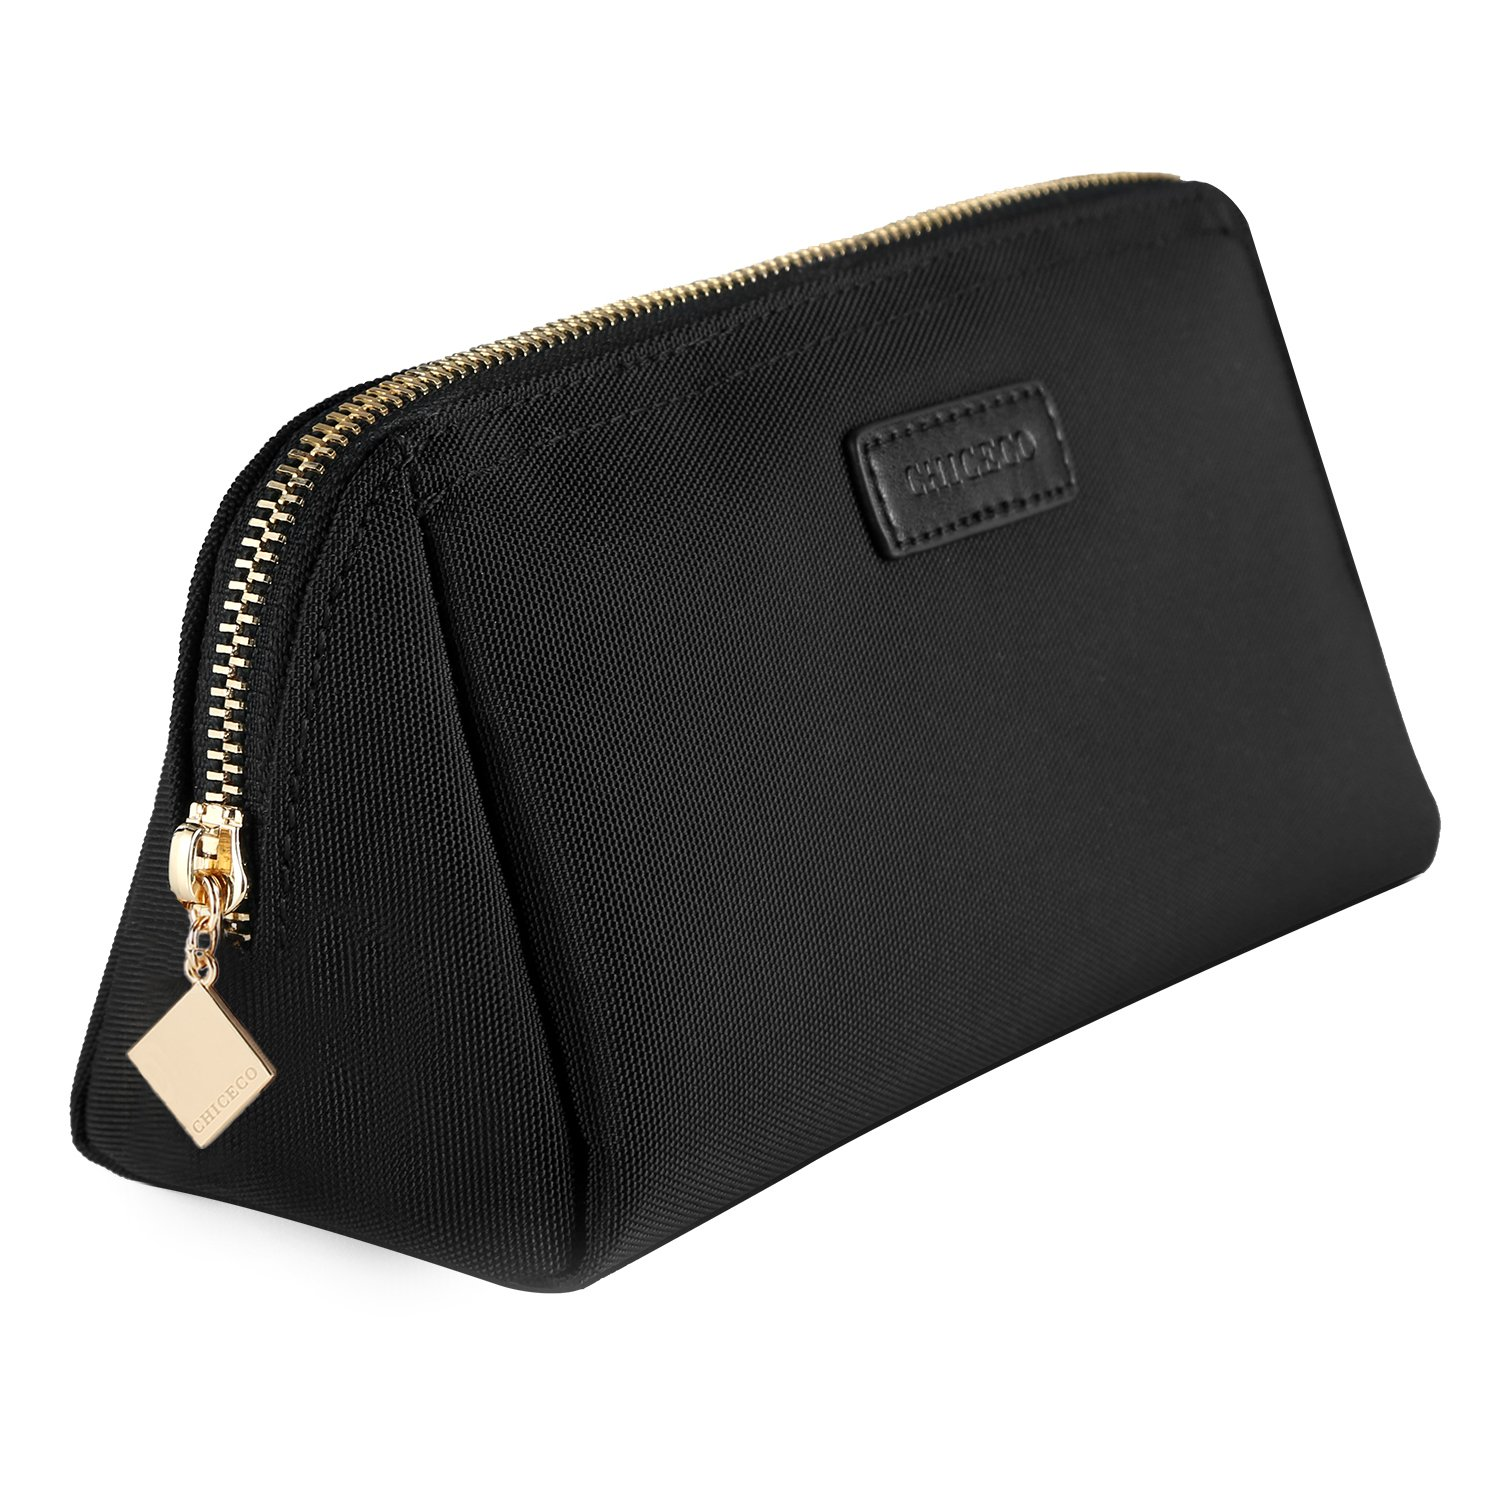 CHICECO Handy Cosmetic Pouch Clutch Makeup Bag - Black/1260D